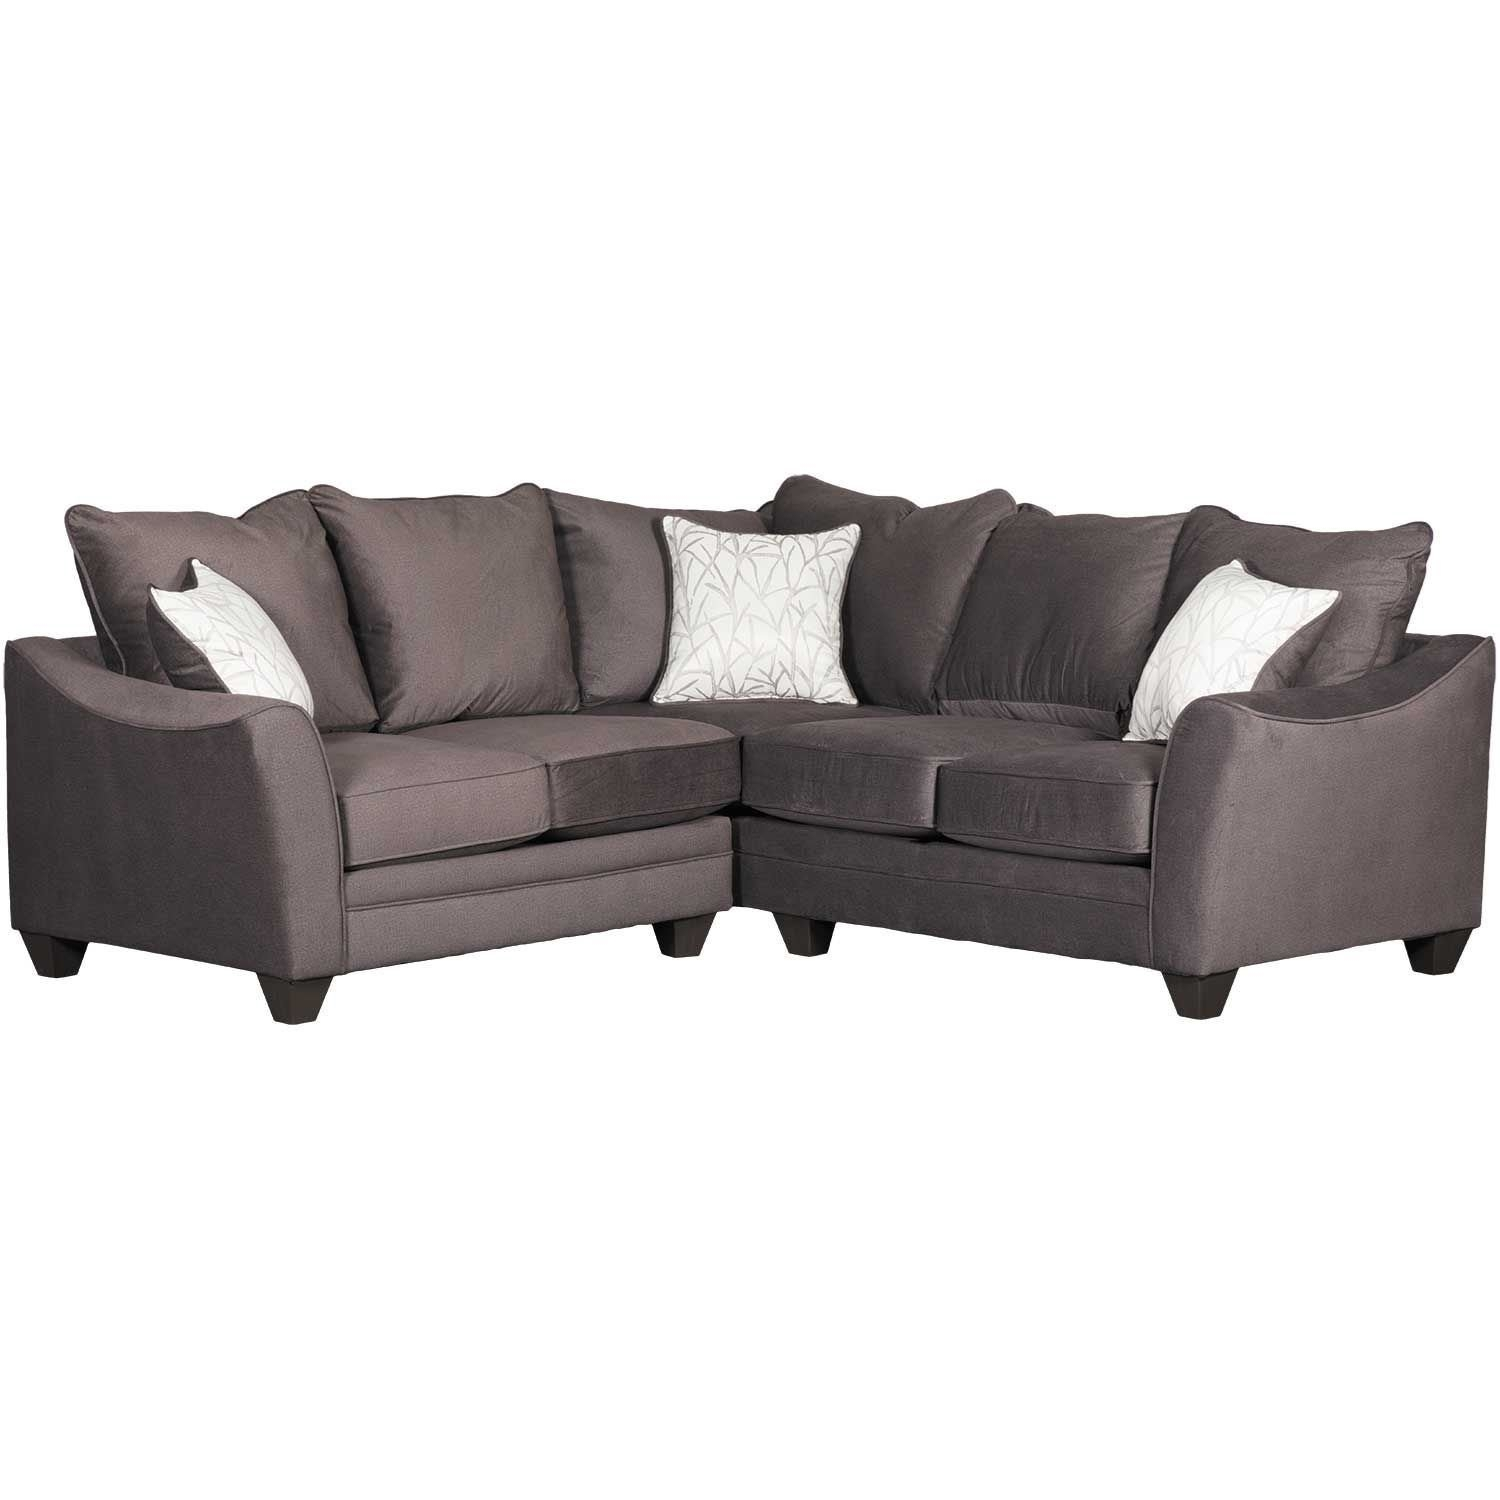 Flannel Seal 2 Piece Sectional With Raf Sofa | 3810/3816 | American Within Cosmos Grey 2 Piece Sectionals With Raf Chaise (Image 9 of 25)